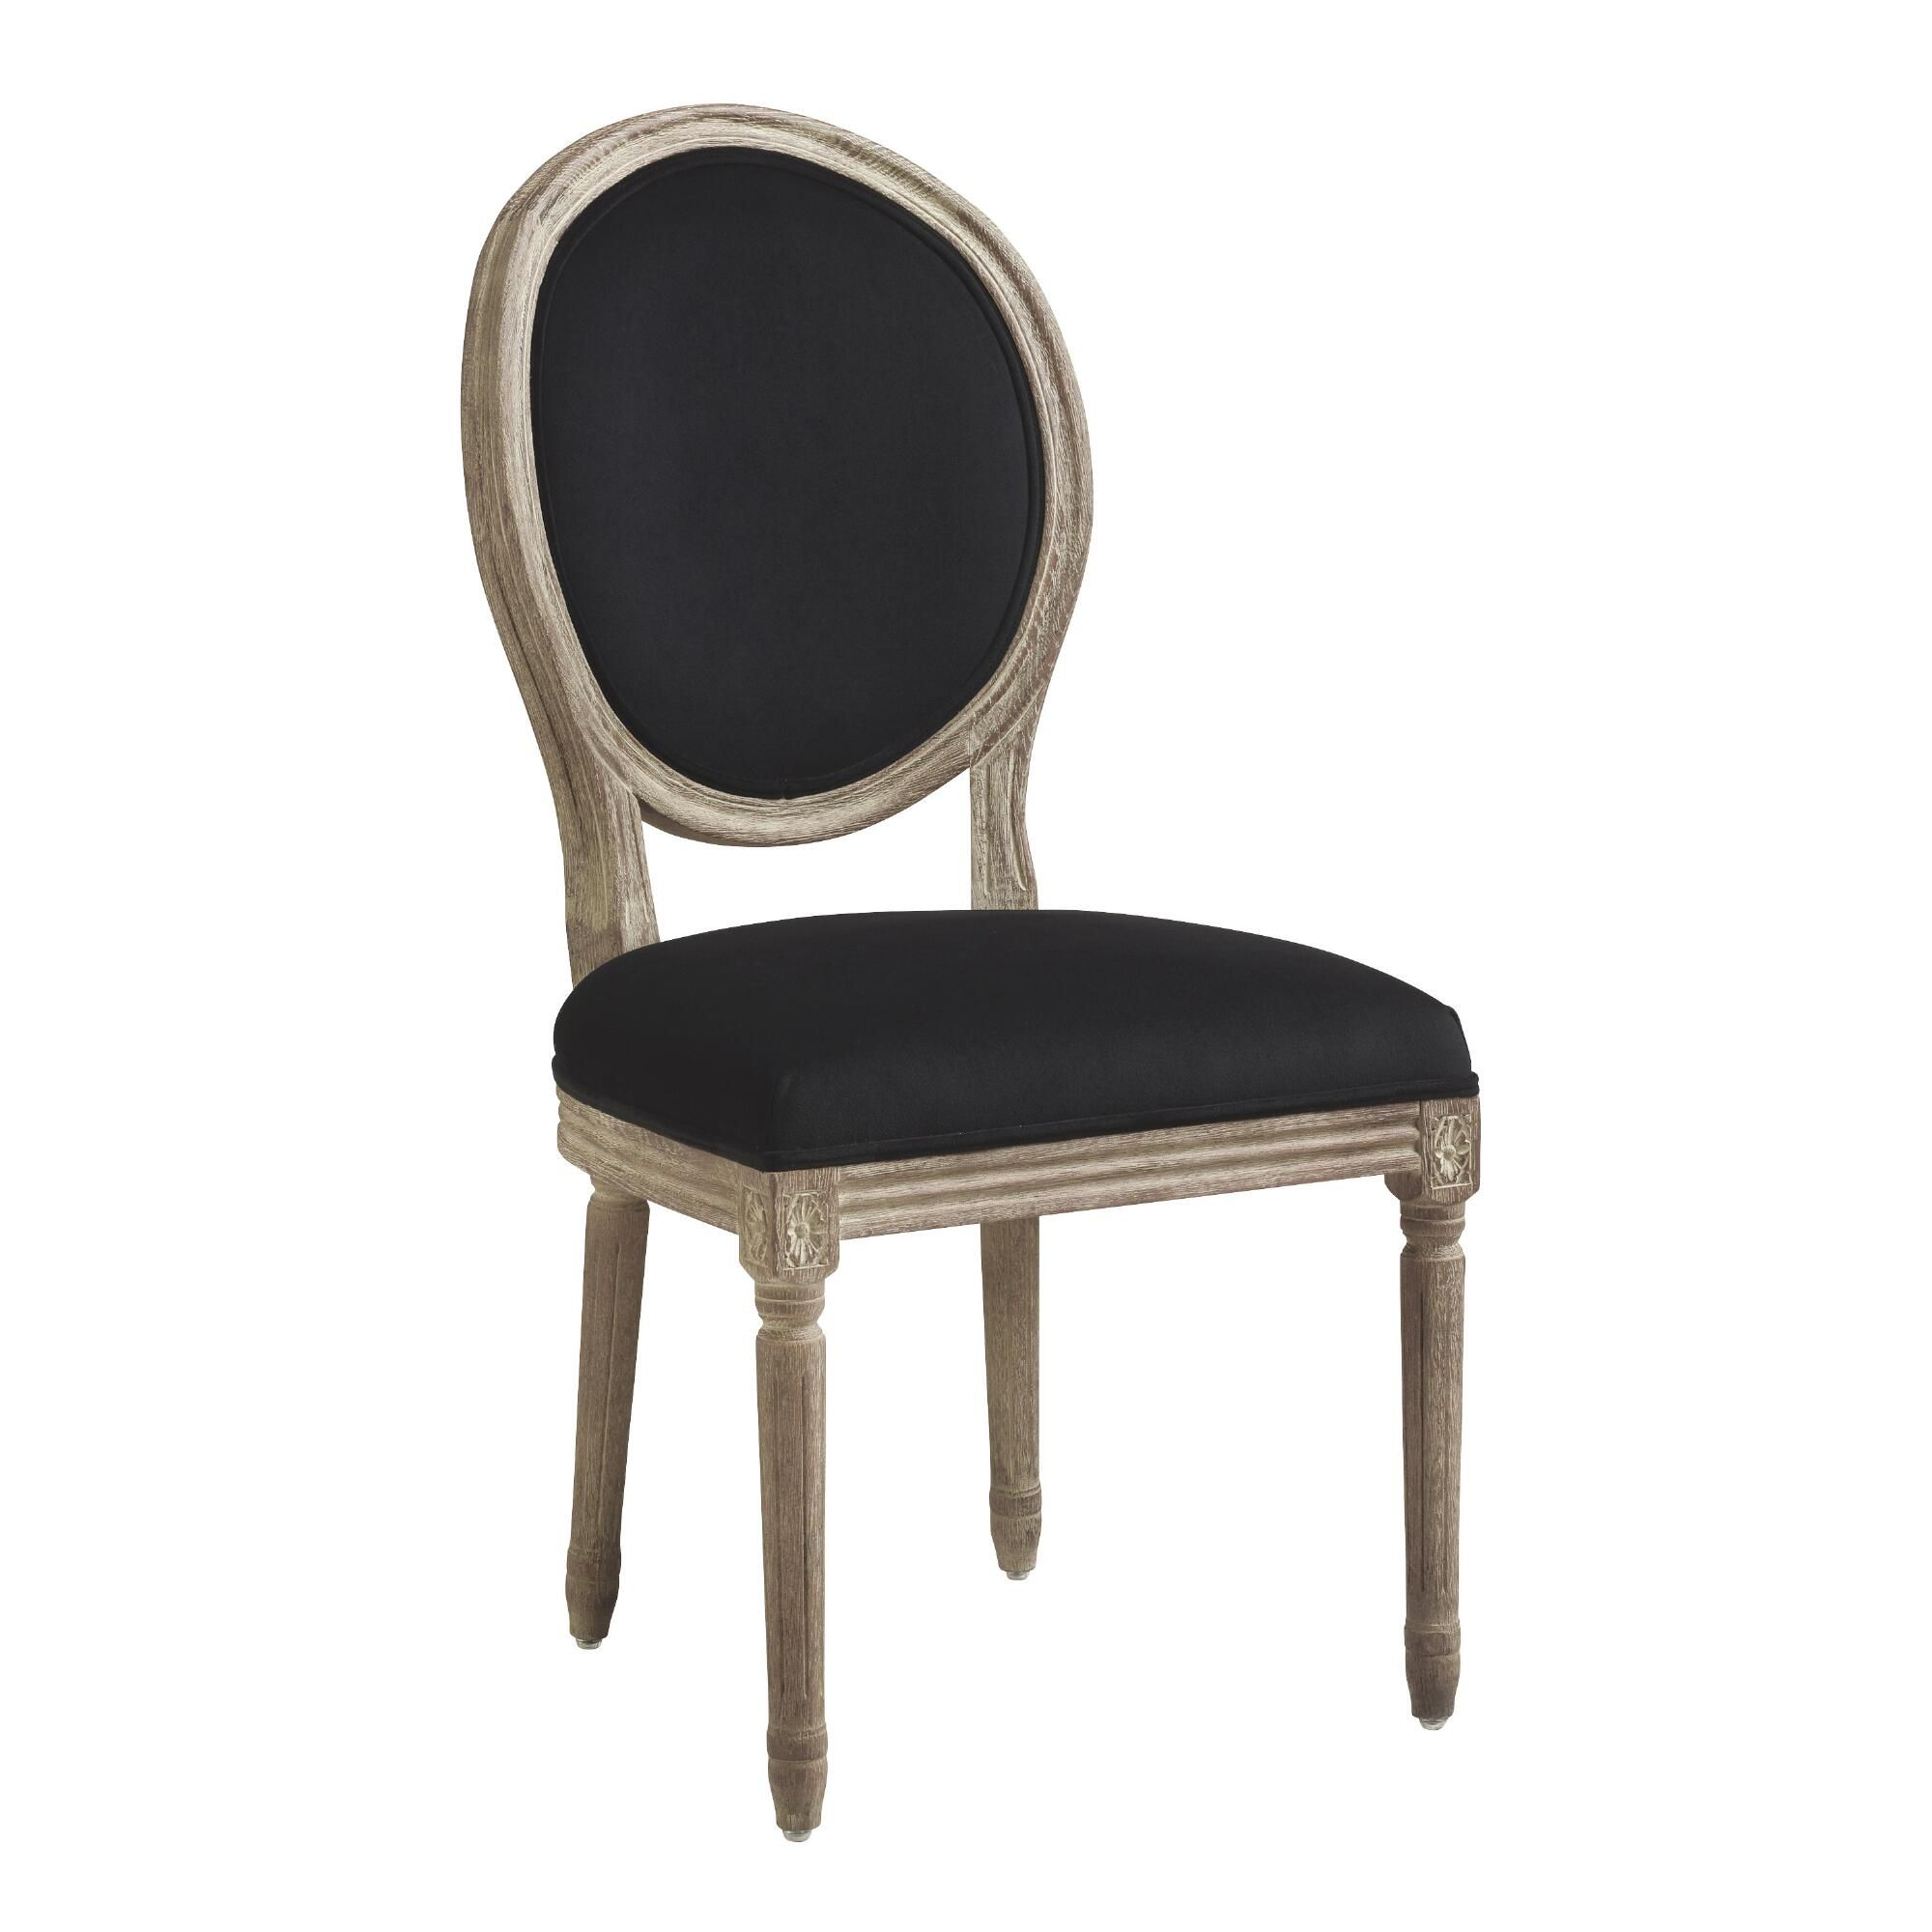 Paige Upholstered Dining Chair